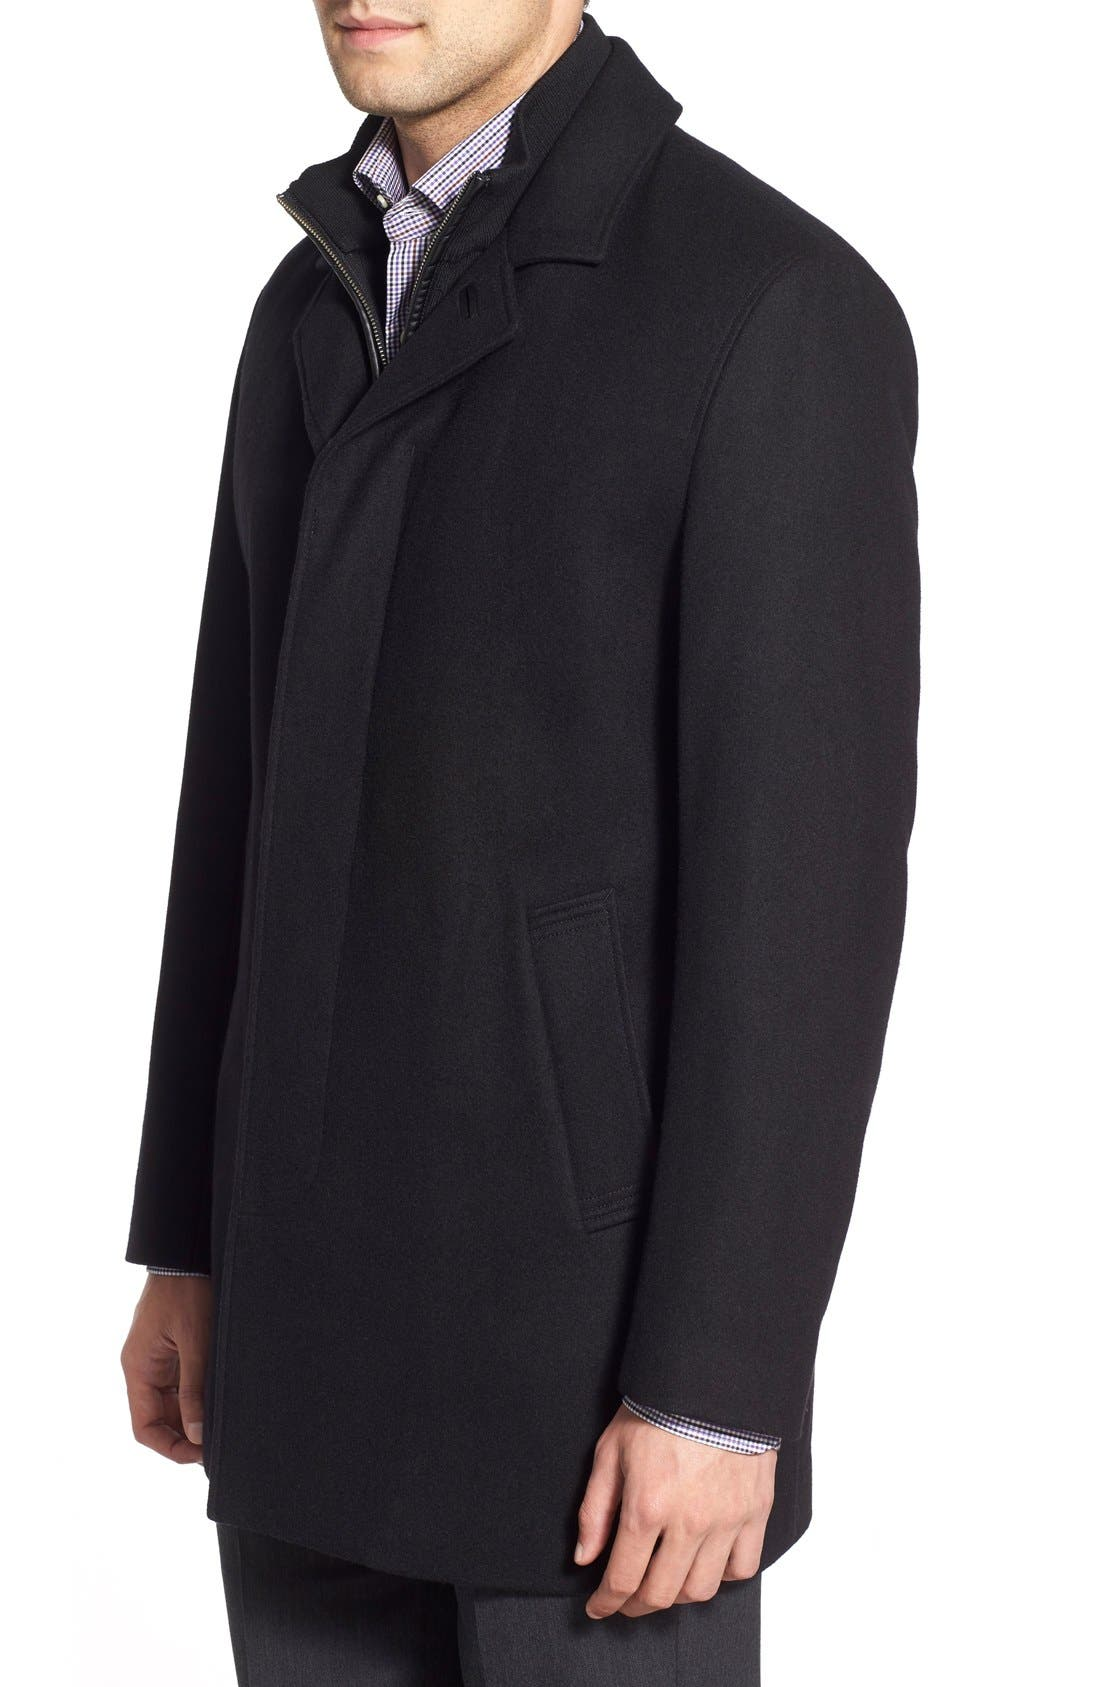 Alternate Image 3  - Cole Haan Wool Blend Topcoat with Inset Knit Bib